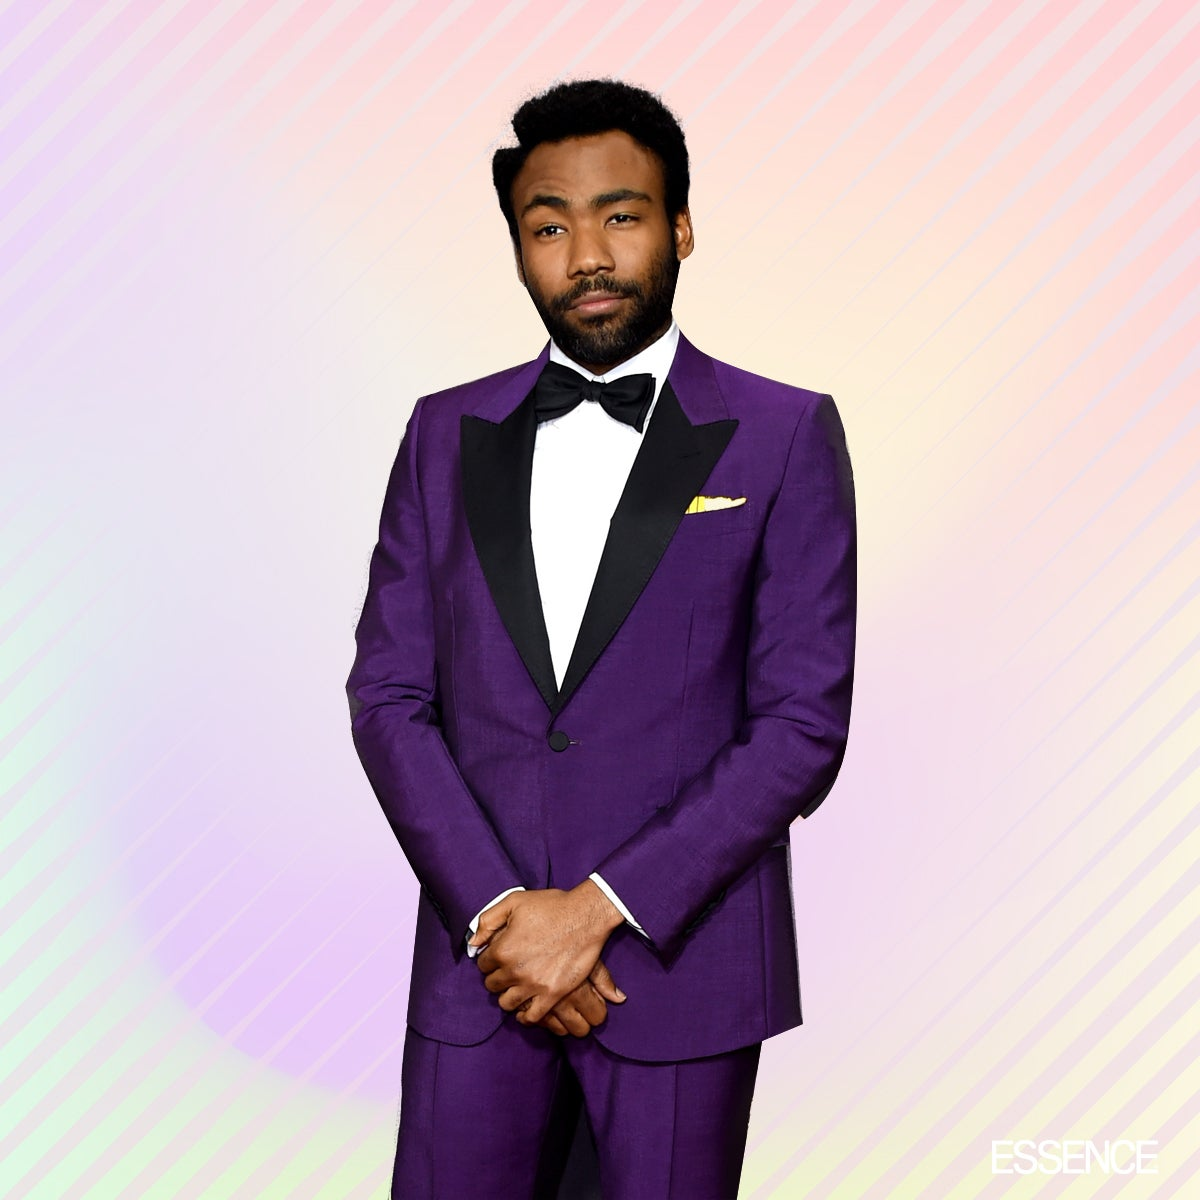 Donald Glover Makes History As First Black Person To Win Emmy For Outstanding Comedy Directing